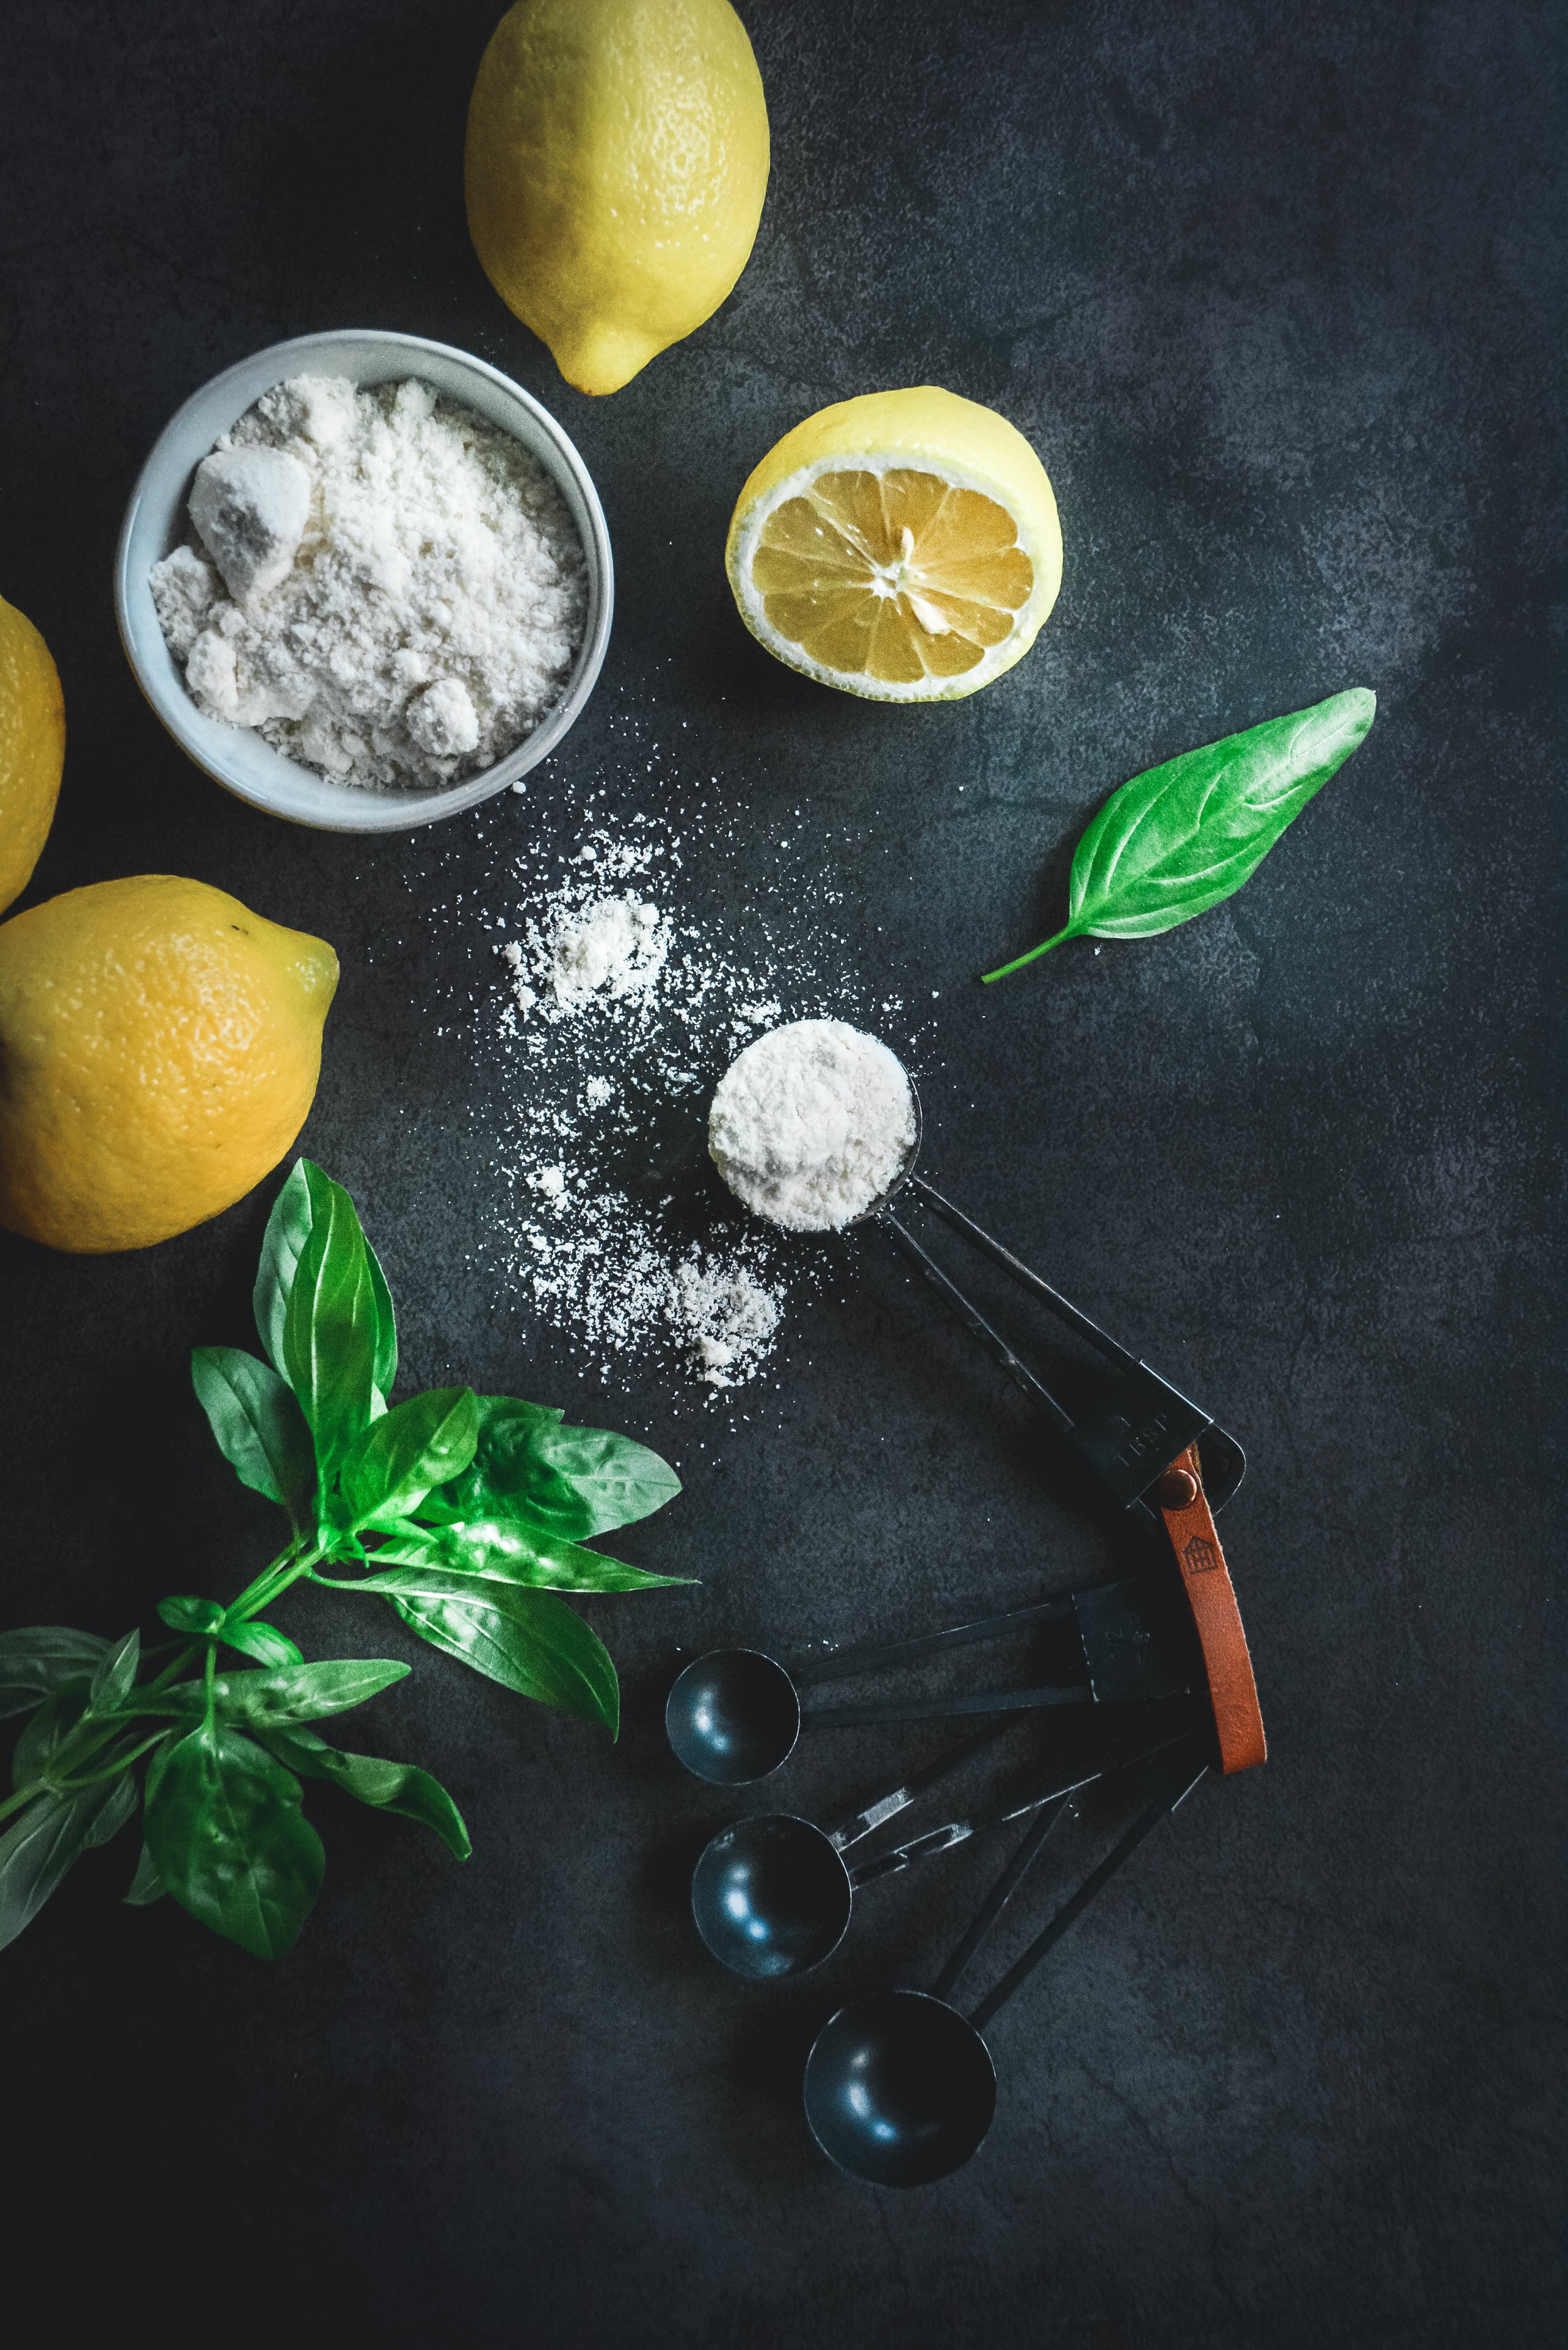 Lemons, coconut flour, measuring spoons, greens